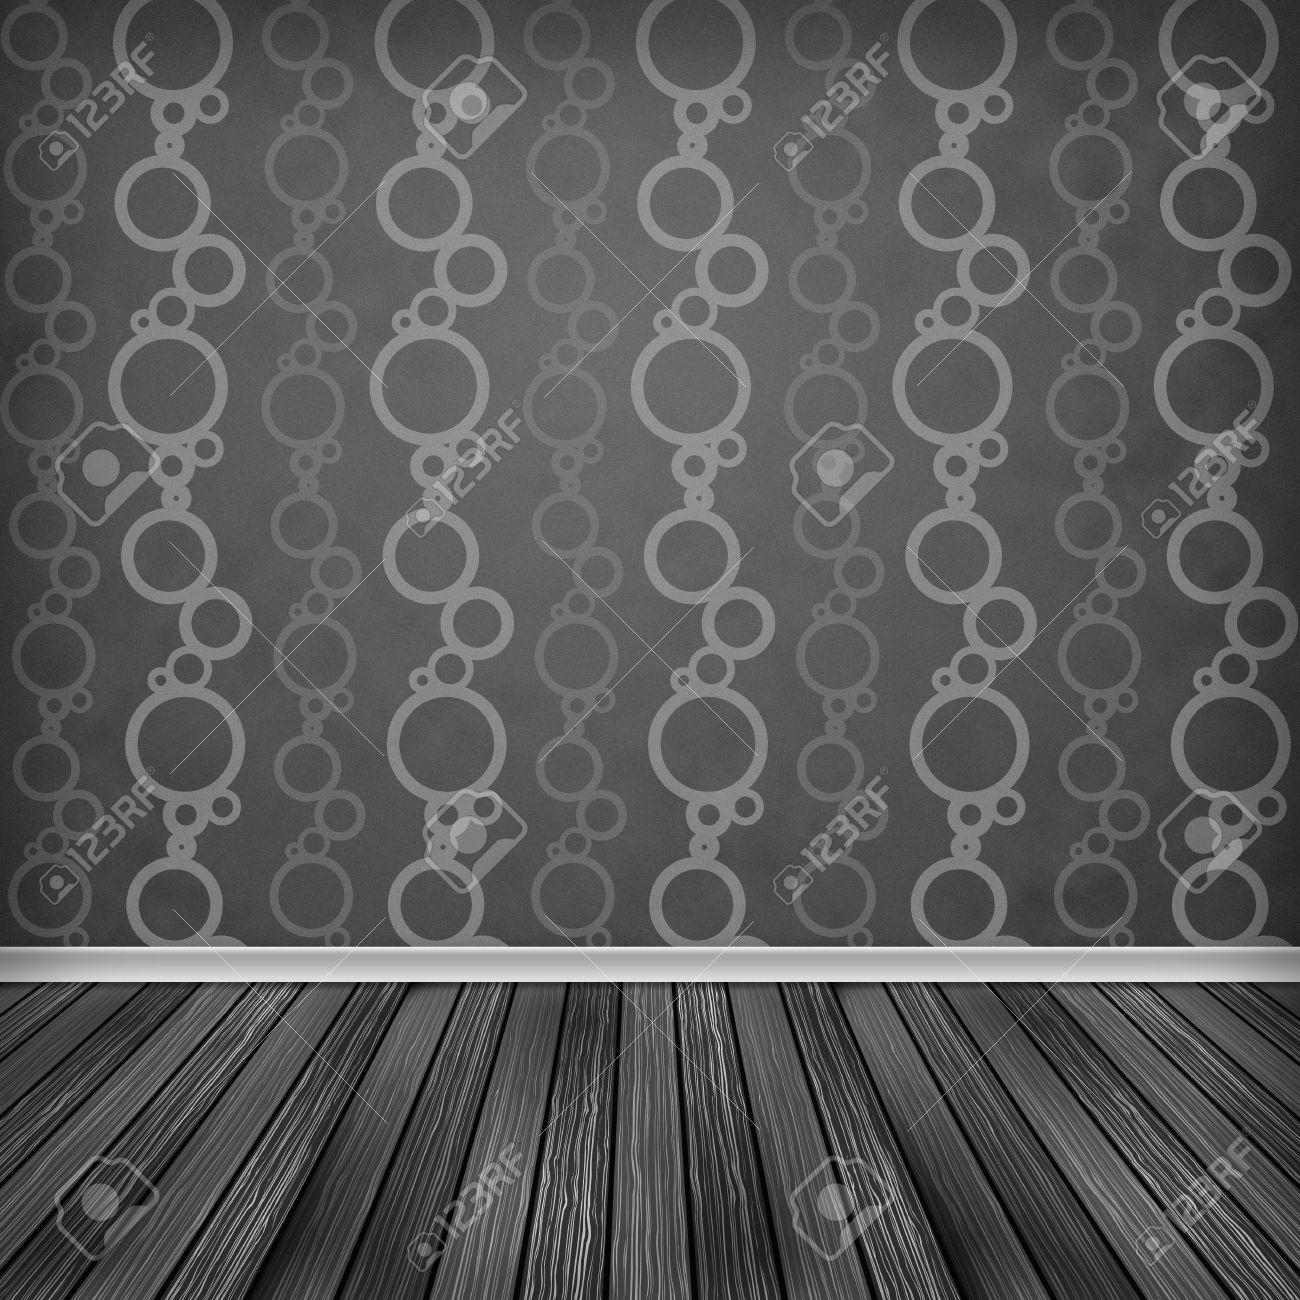 Interior wallpaper texture - Empty Room Interior With Wallpaper High Resolution Texture Background Stock Photo 20470550